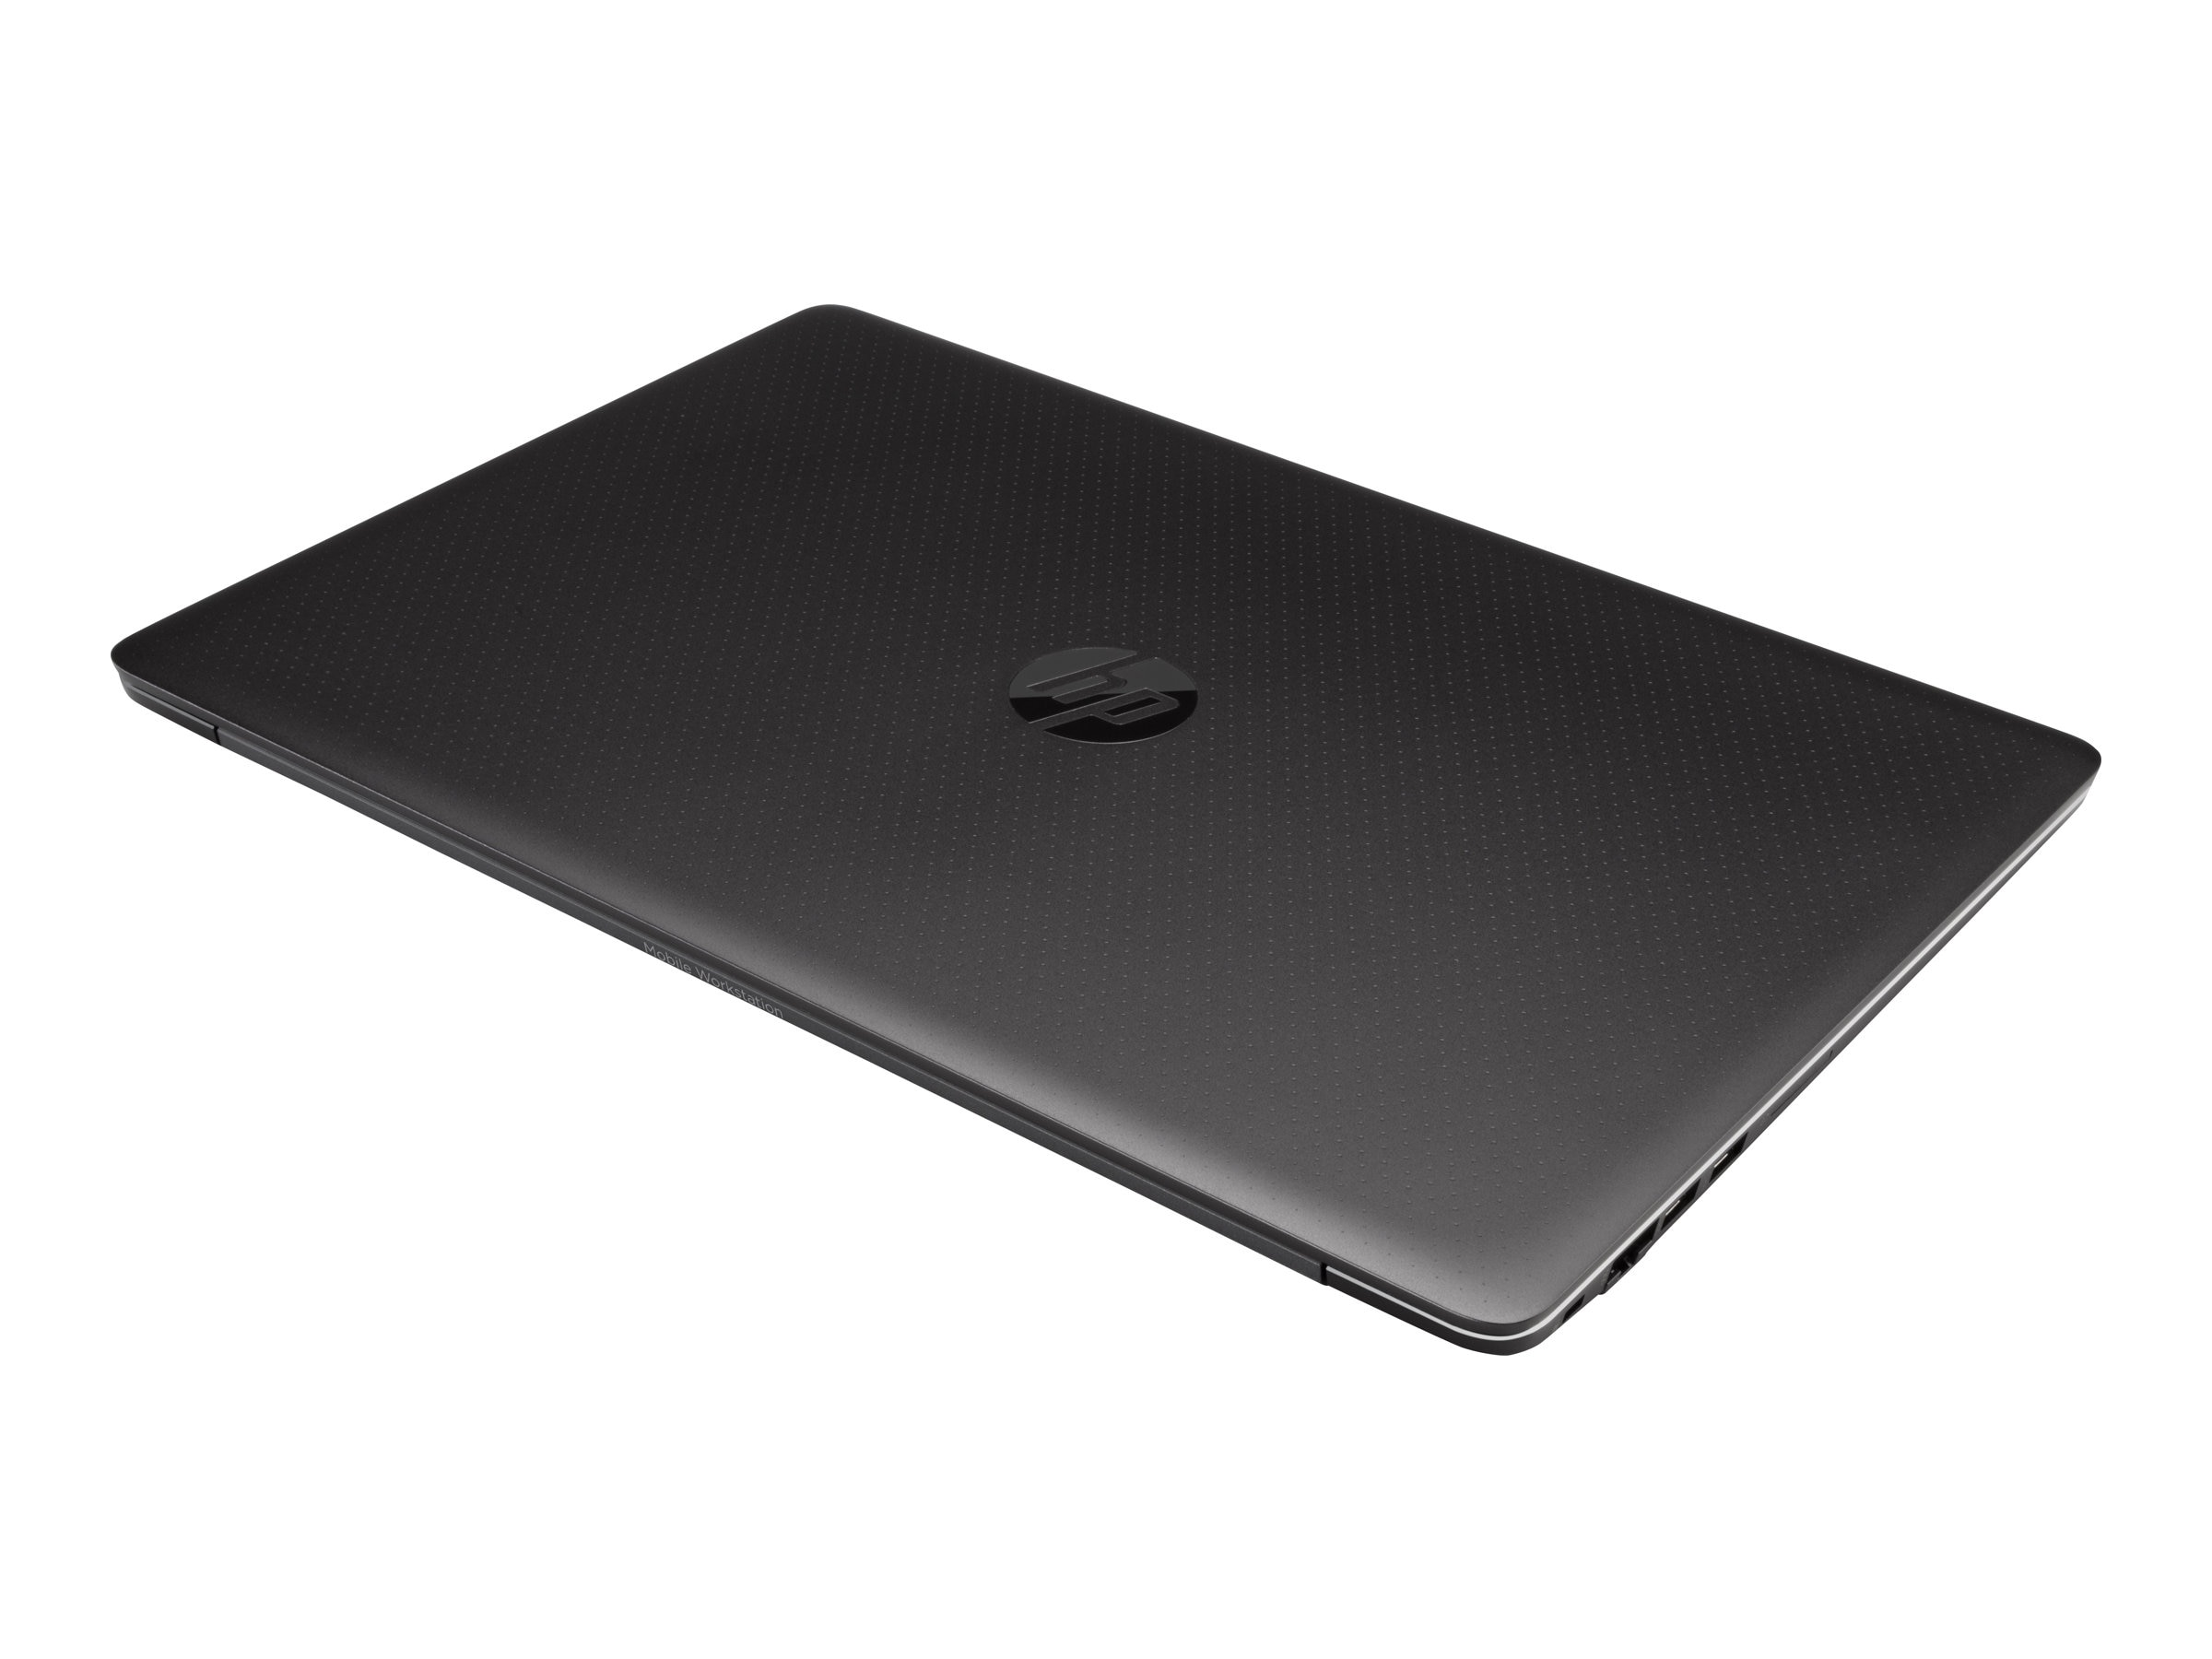 HP ZBook Studio G3 Core i7-6700HQ 2.6GHz 16GB 512GB PCIe ac BT FR M1000M 15.6 UHD W10P64